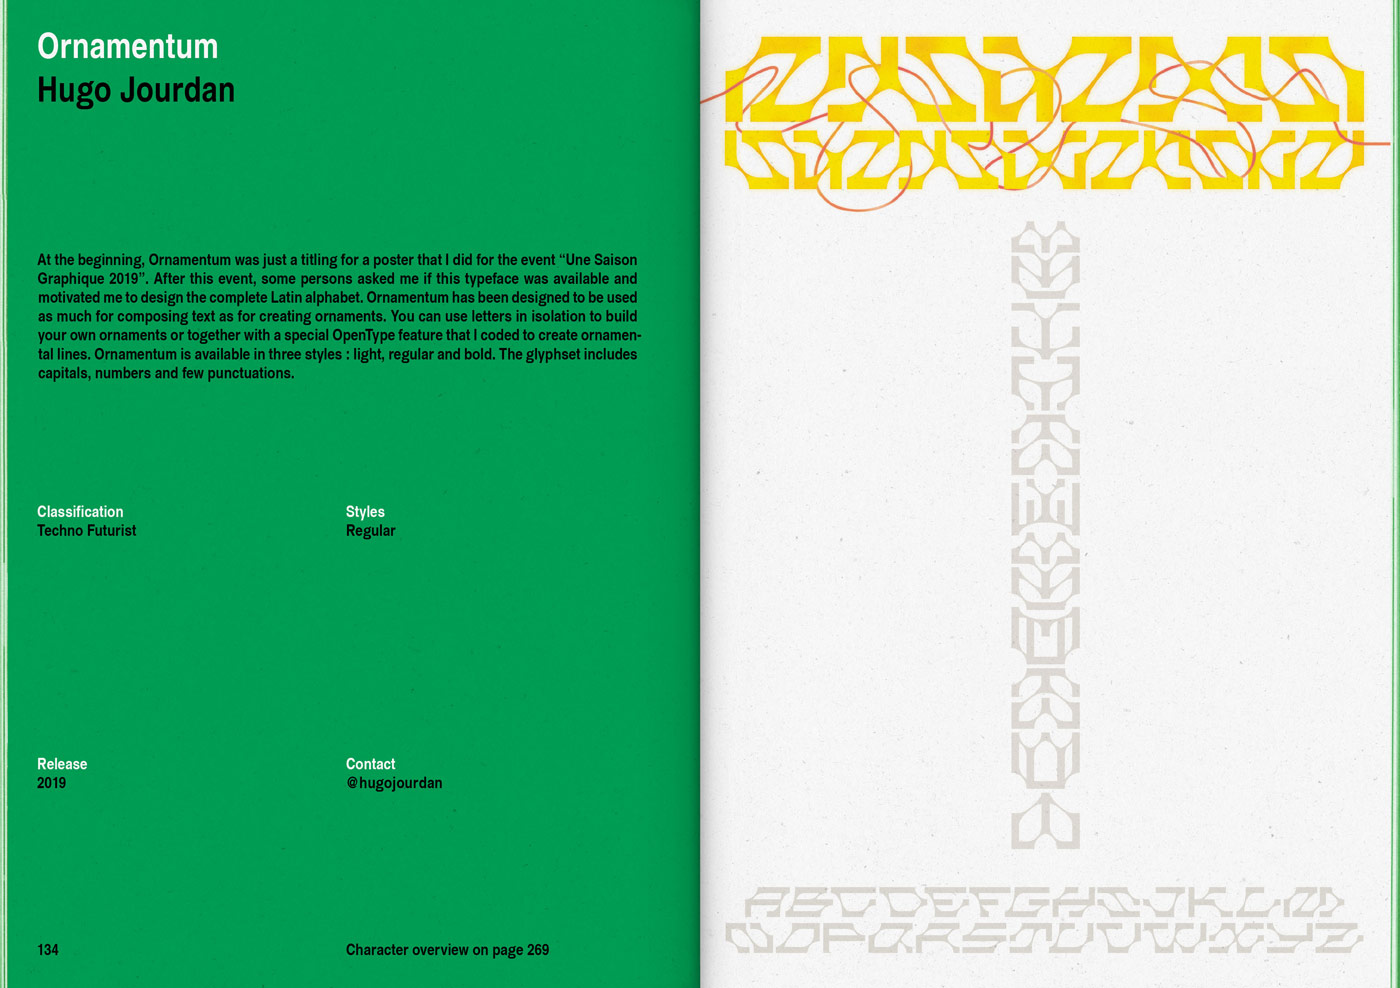 06 collide24 New Aesthetic 2 - Sophia Brinkgerd and Leonhard Laupichler celebrate the release of New Aesthetic 2, this time in collaboration with publishing house Sorry Press